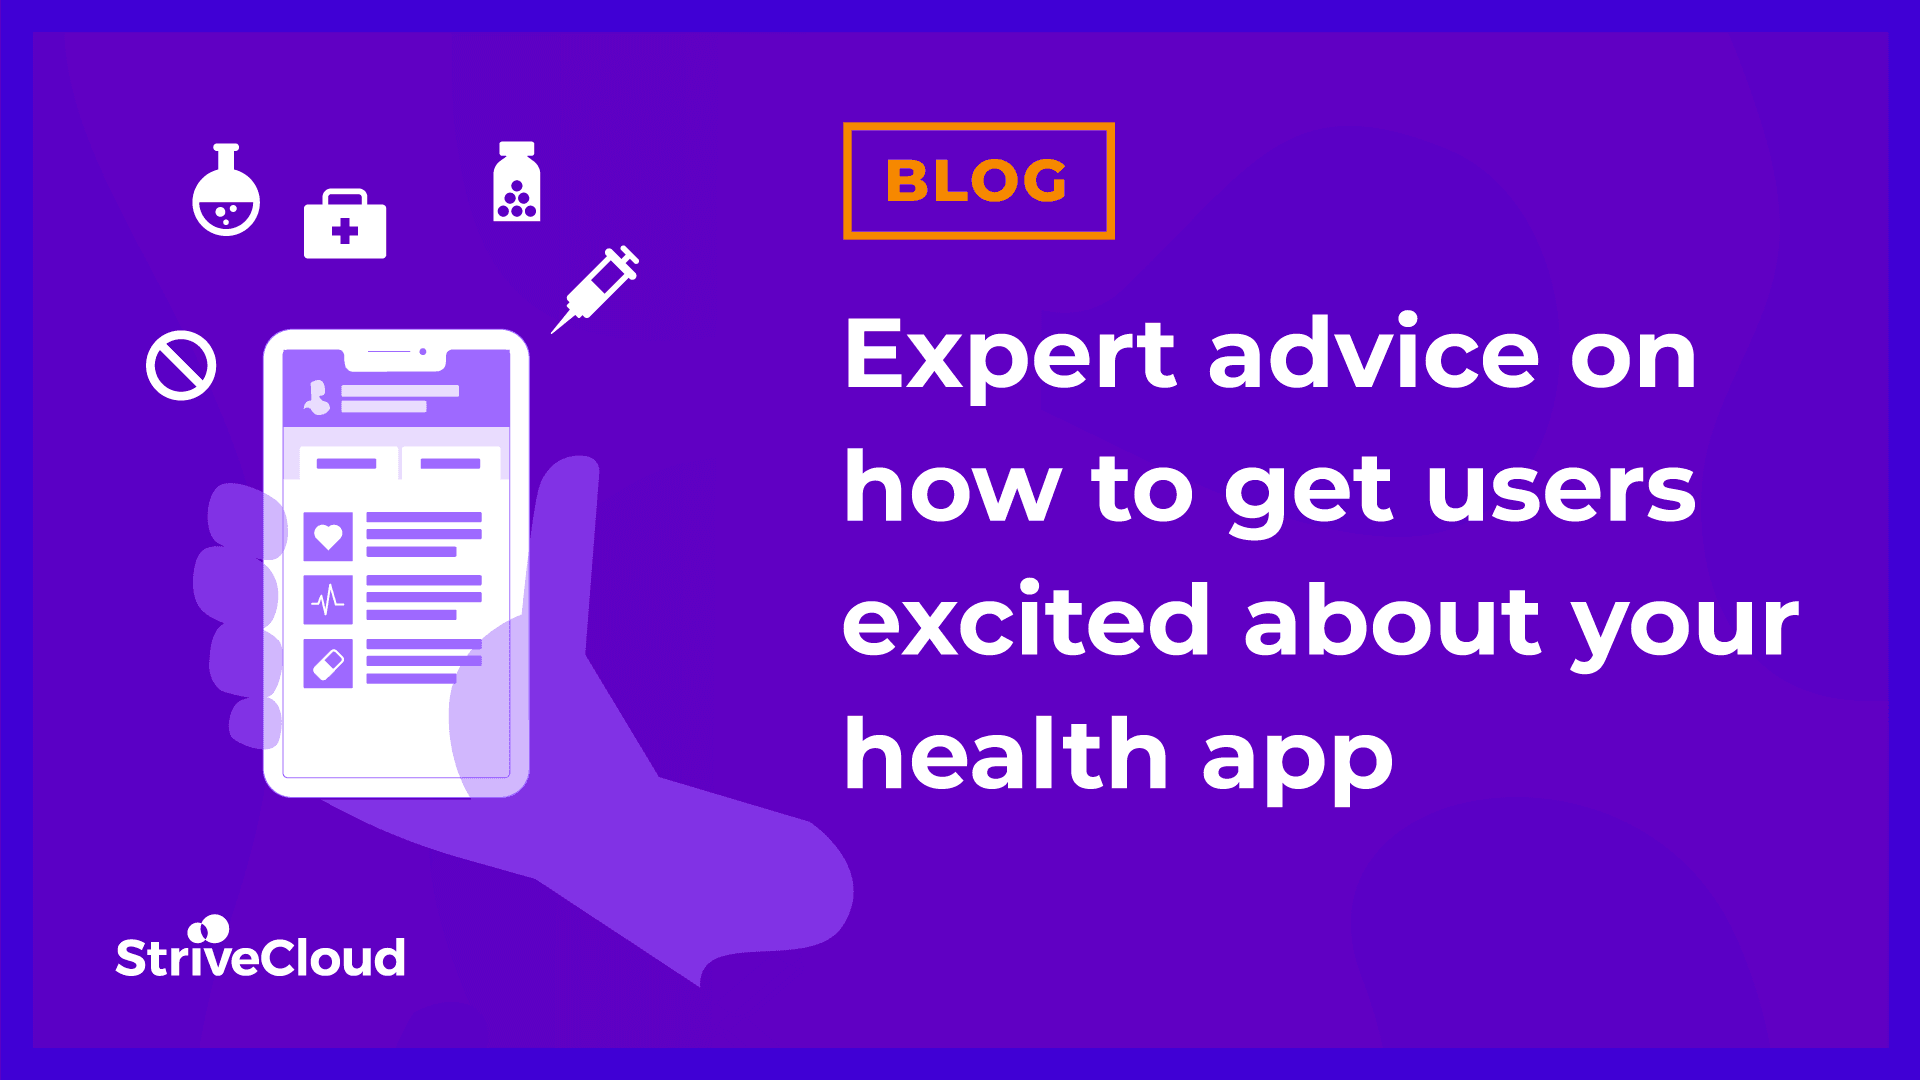 Expert advice on how to get users excited about your health app